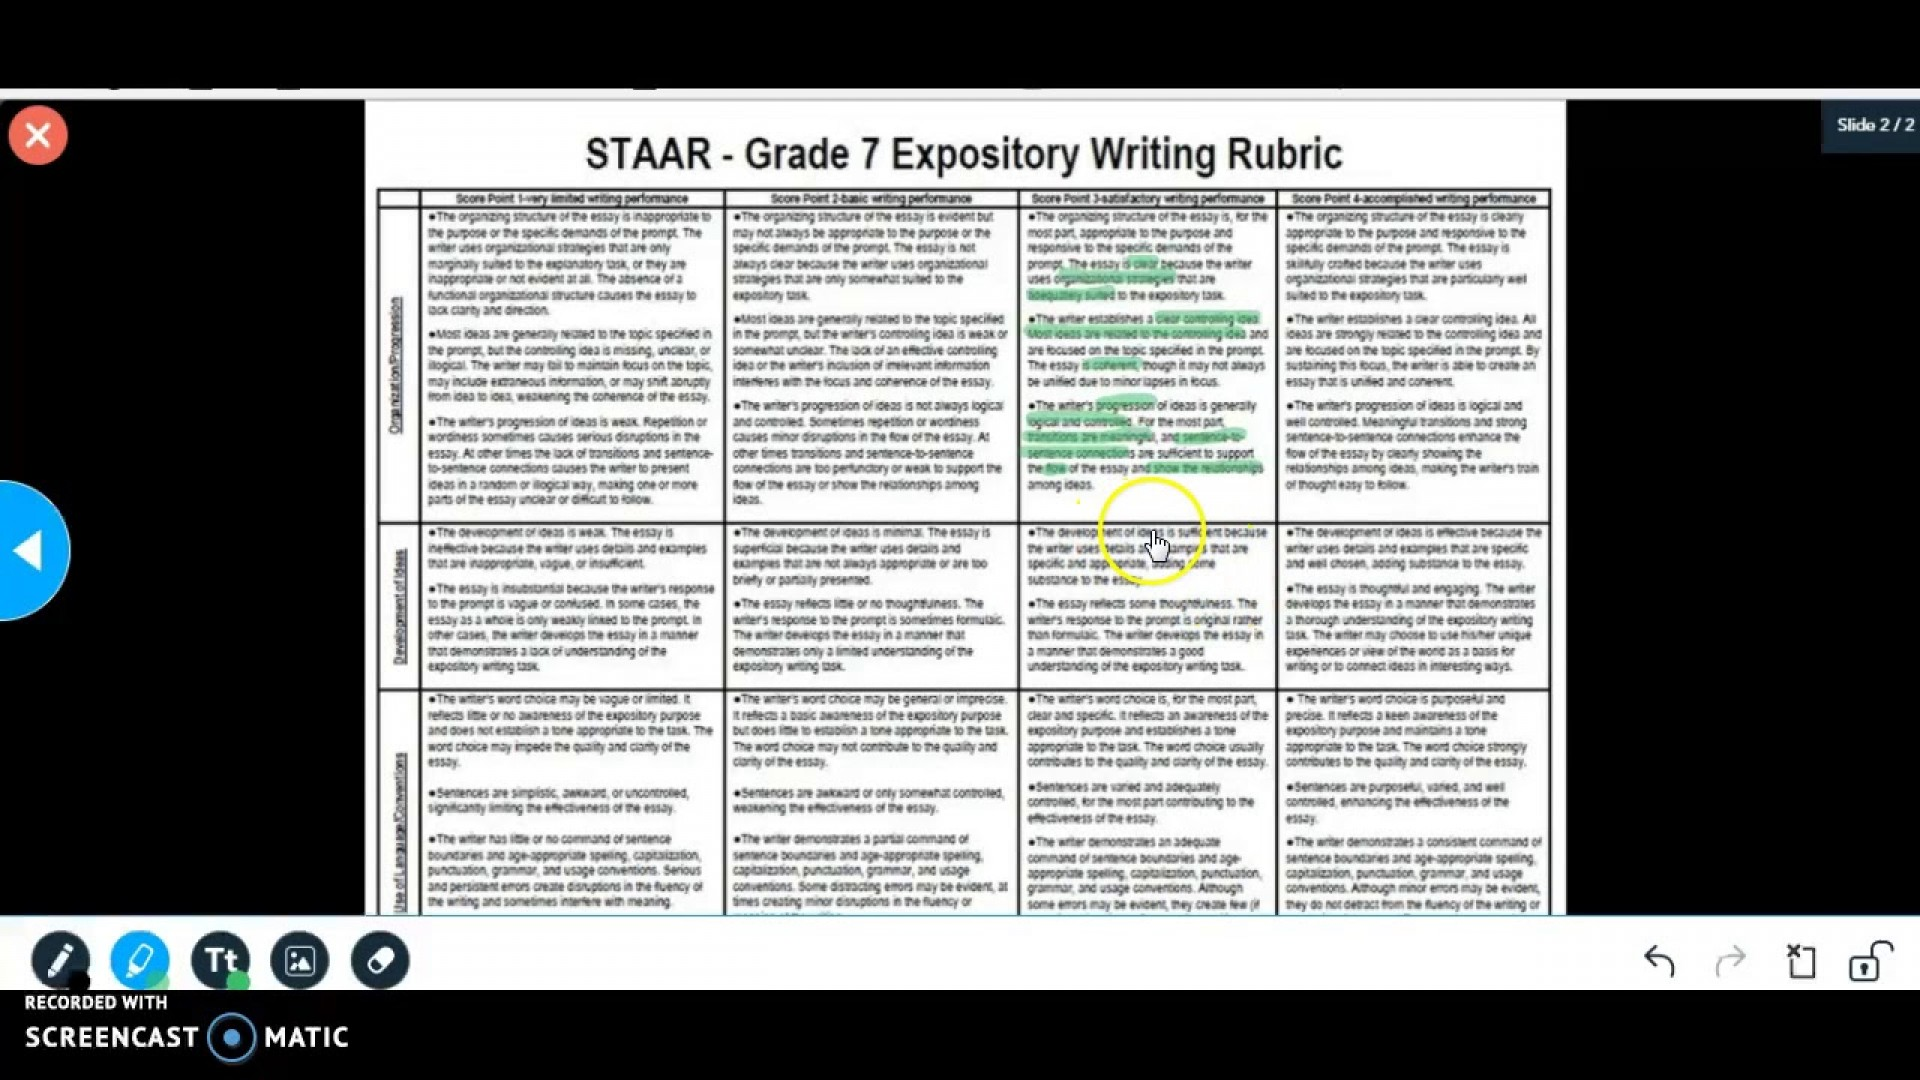 018 Maxresdefault Essay Example Expository Awesome Rubric 5th Grade Informative Writing 4 7th 1920